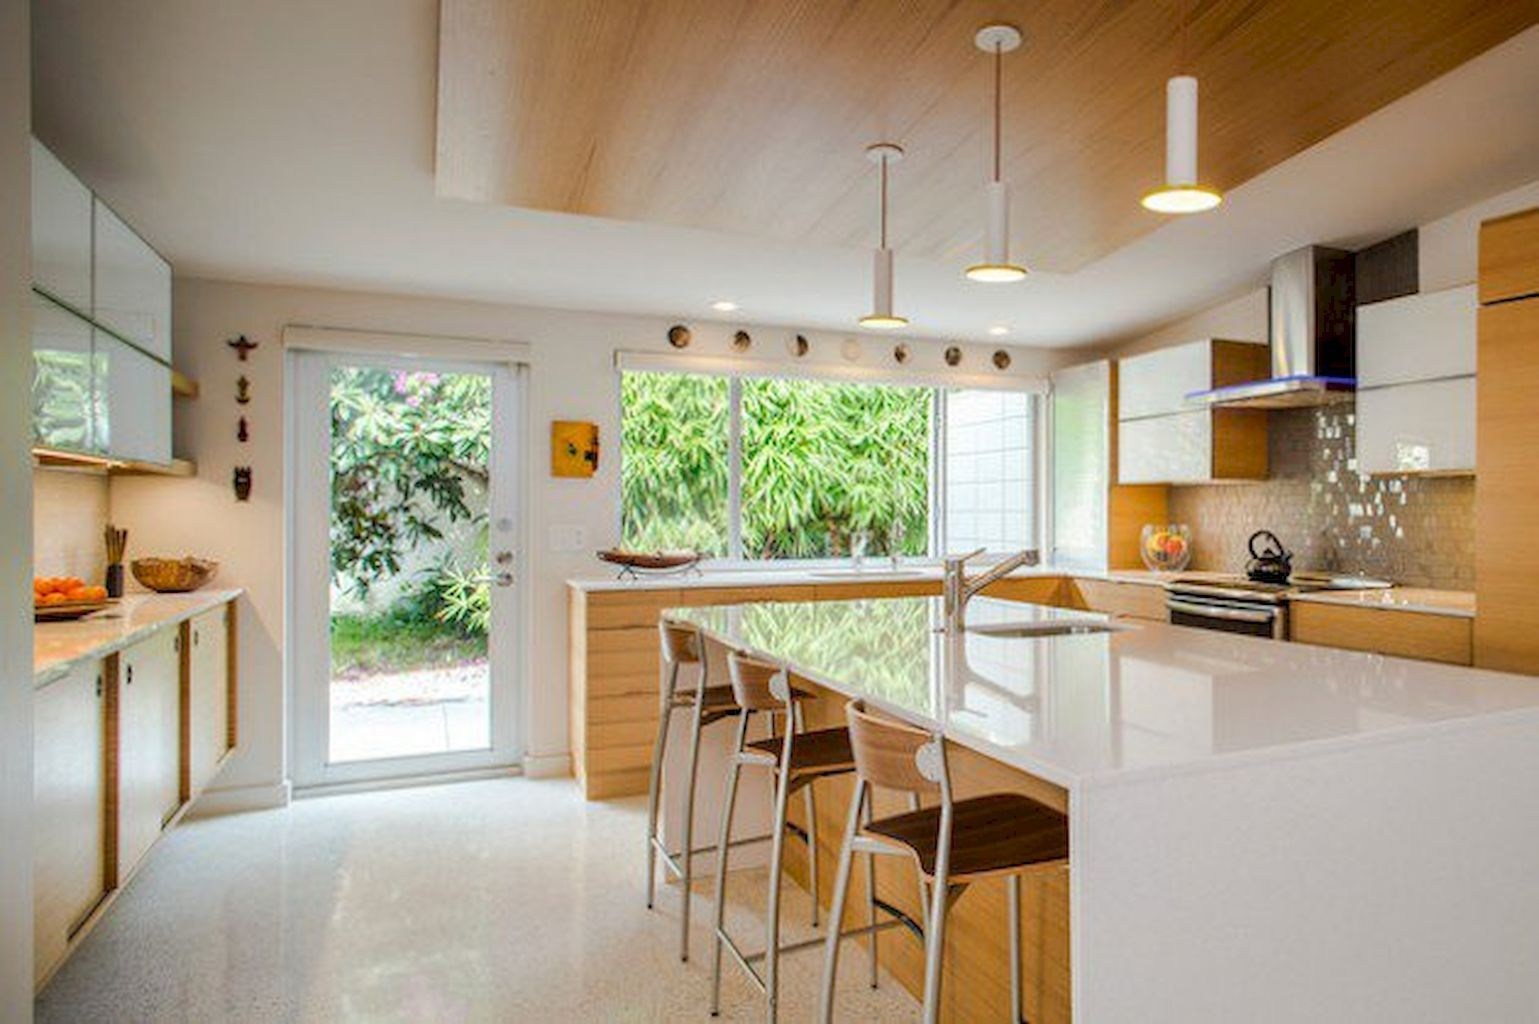 Cool 80 Modern Mid Century Kitchen Remodel Ideas https://roomodeling ...